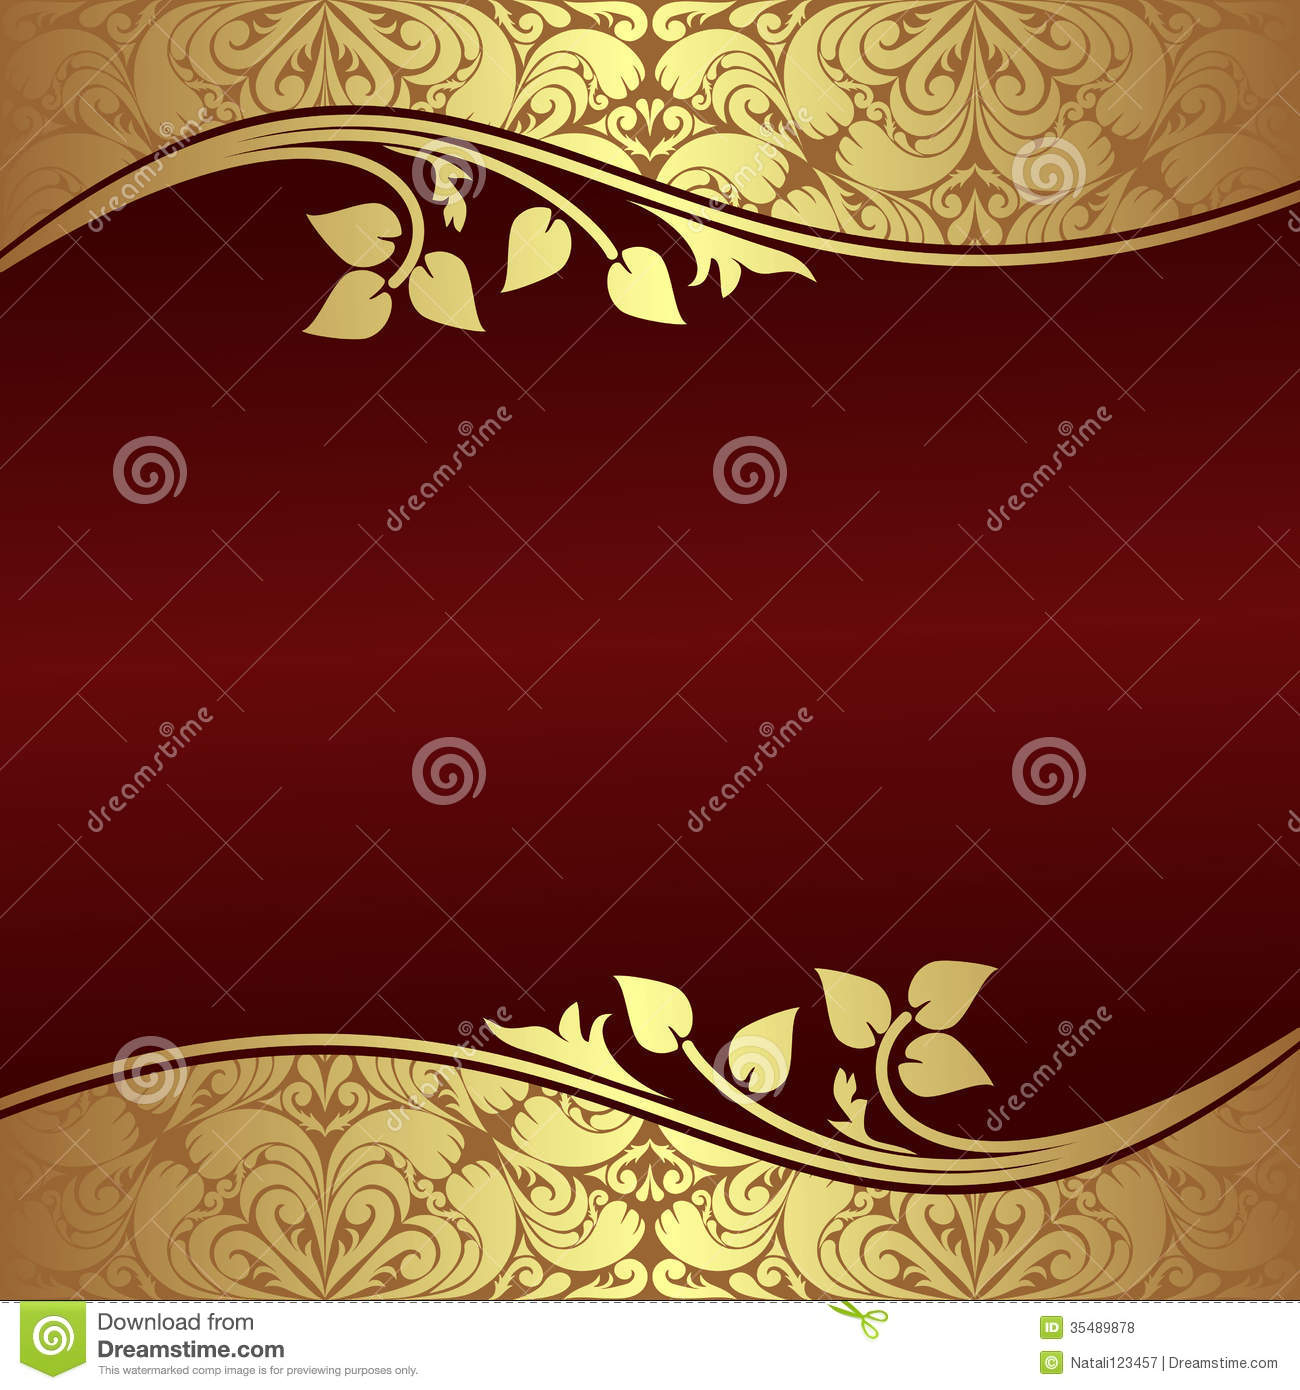 Elegant Background With Floral Golden Borders. Royalty Free Stock.